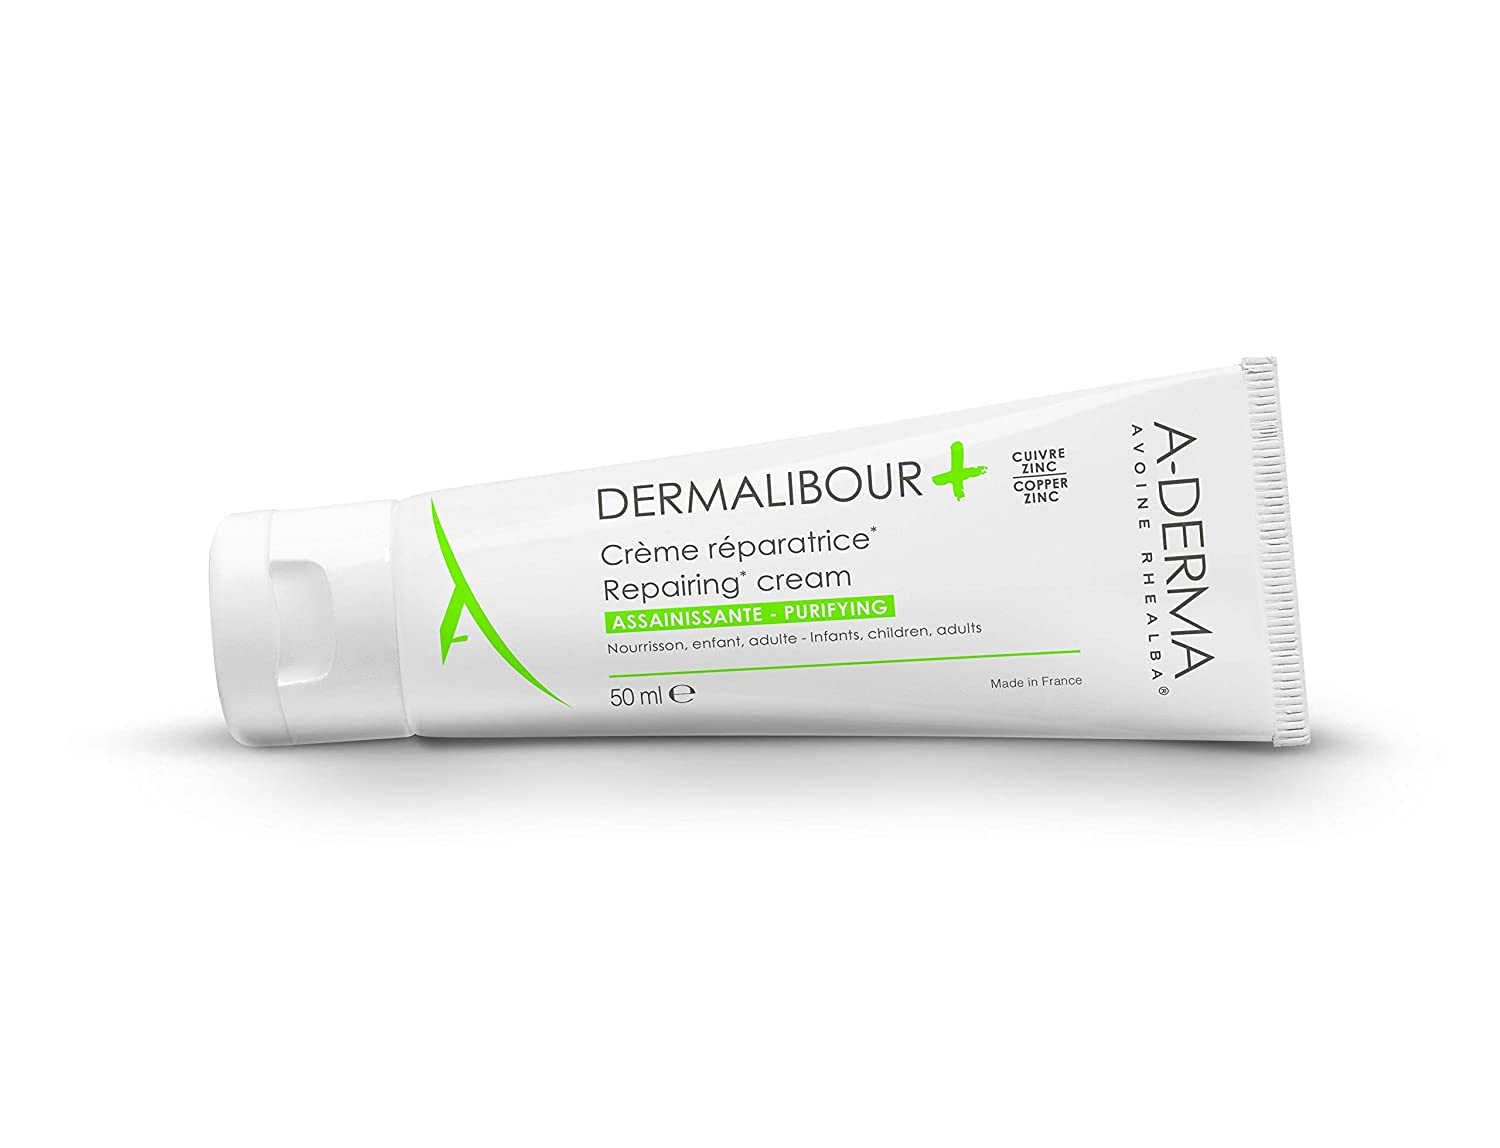 A-derma Dermalibour Face & Body Emolliant Cream 50ml Rash & Purifies Skin Care the Skin